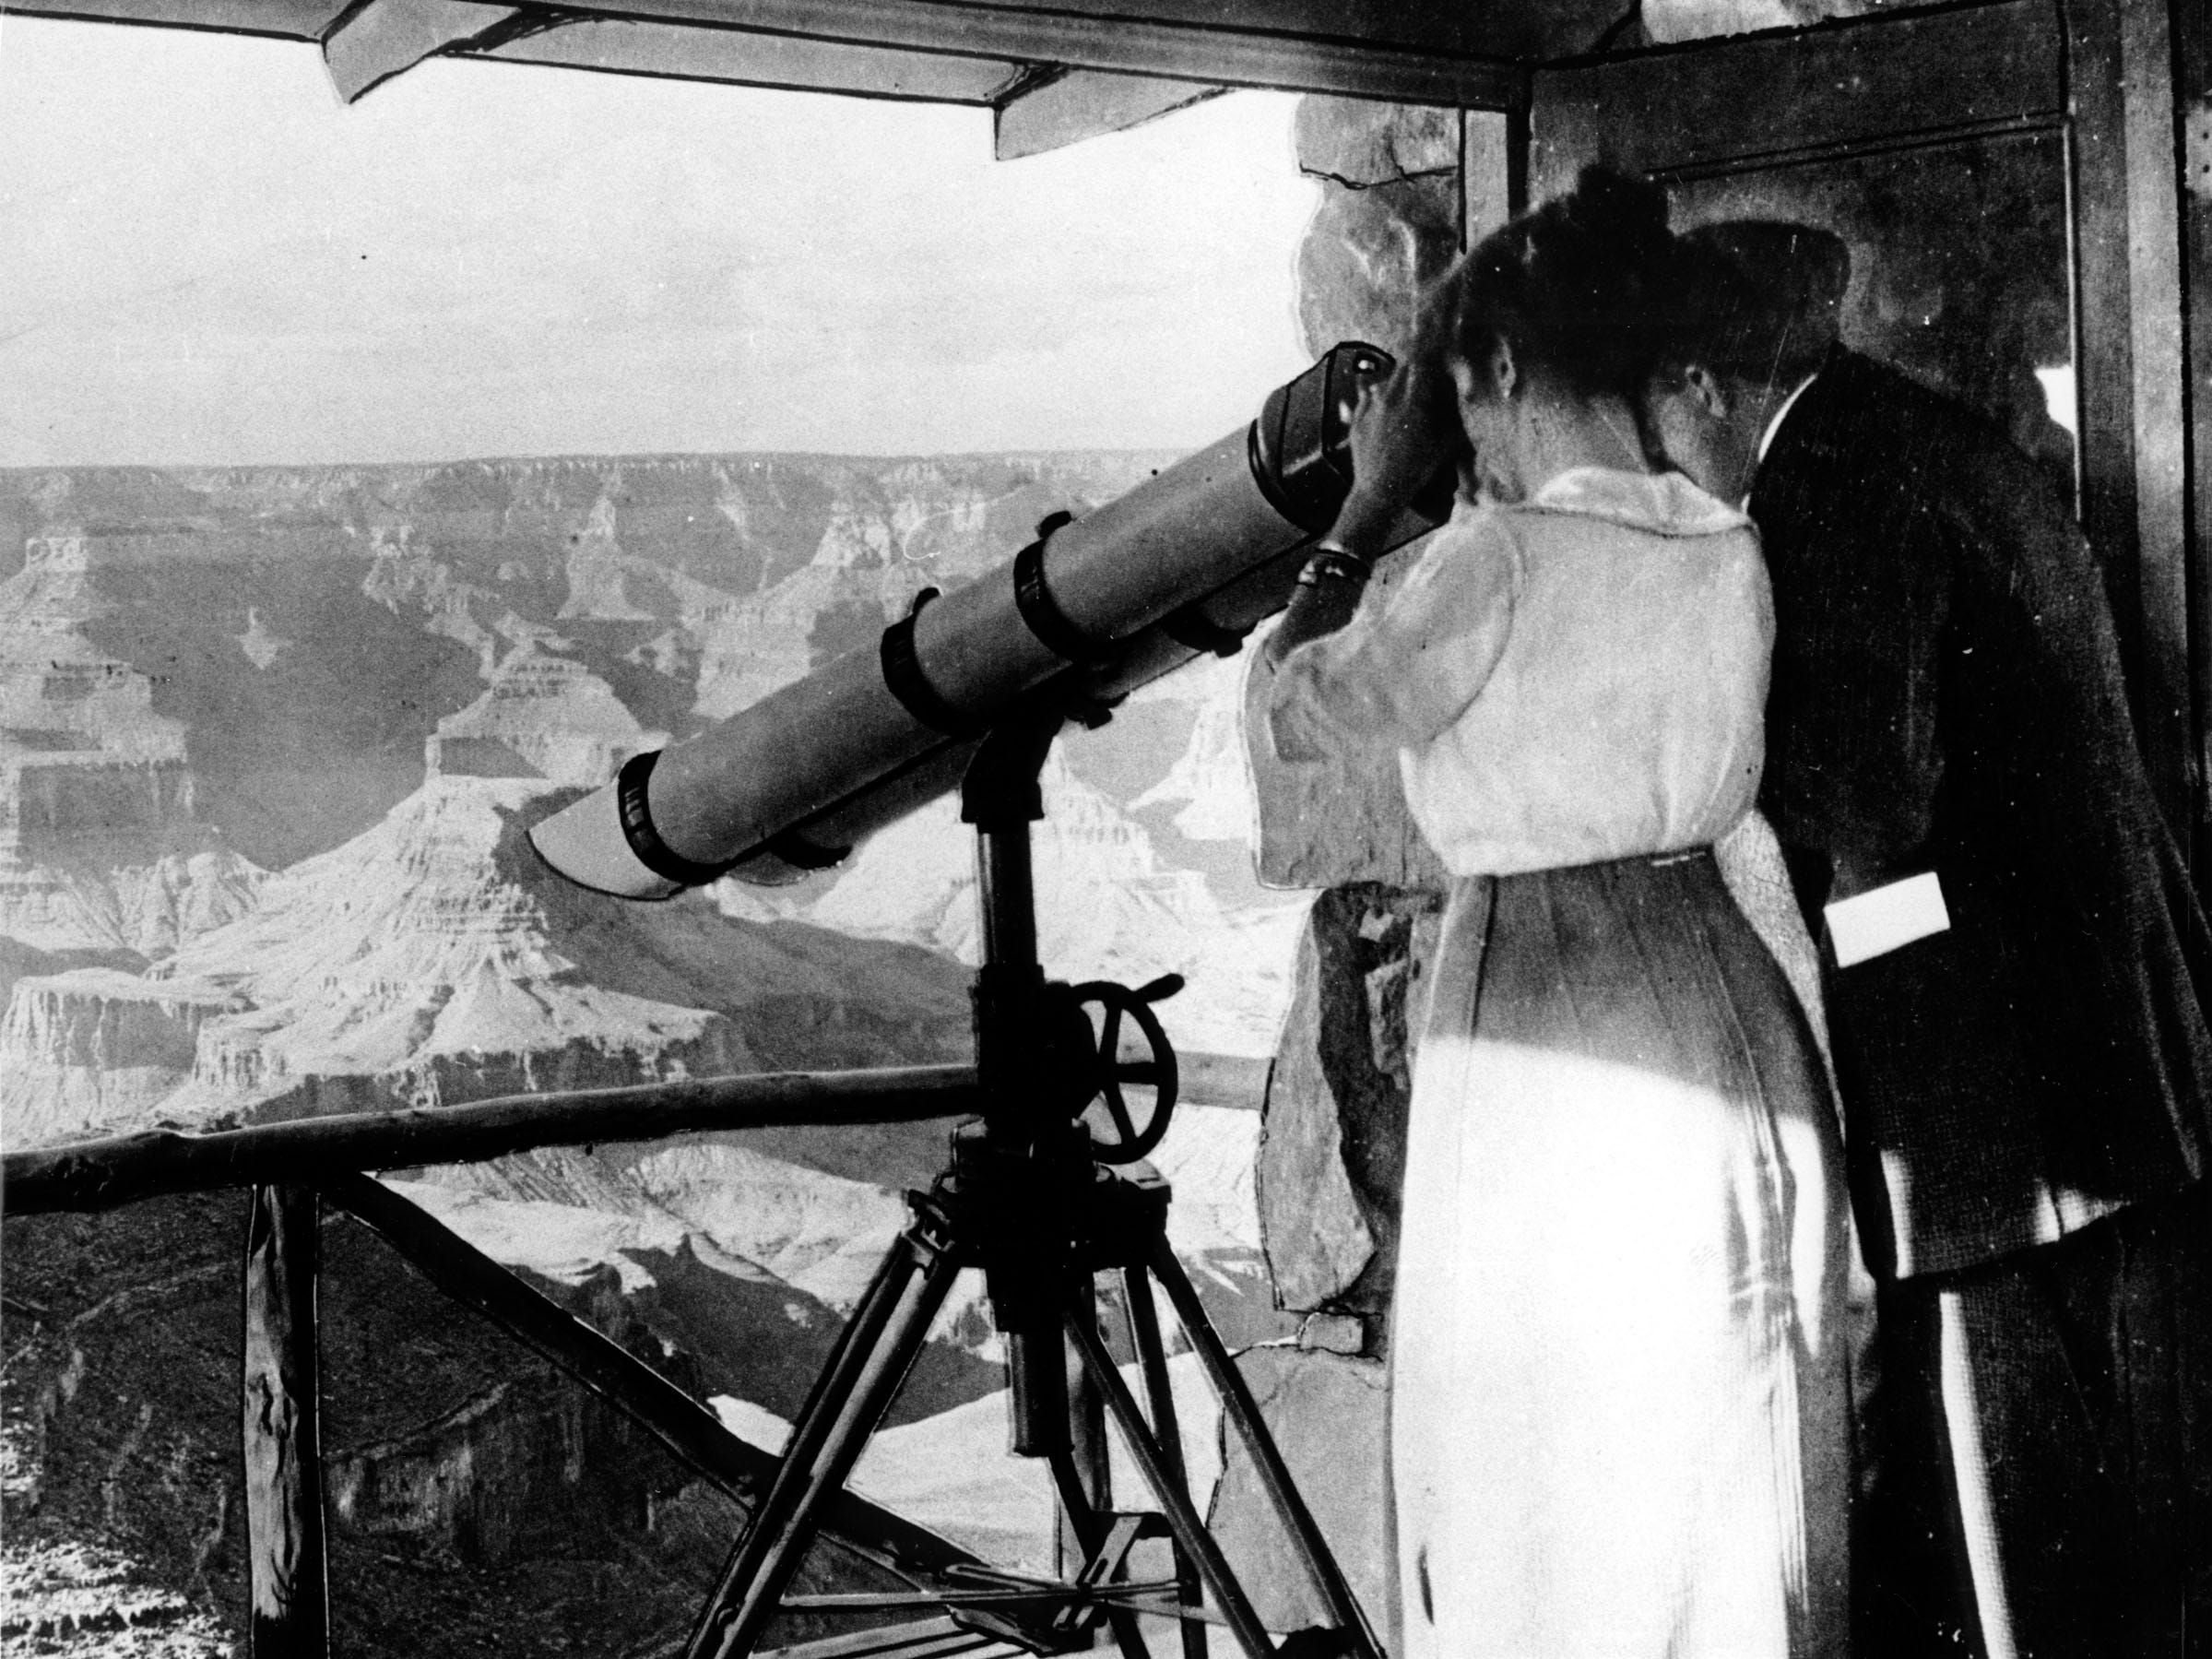 Visitors in 1915 peer at the Grand Canyon from Telescope Tower at Lookout Studio.